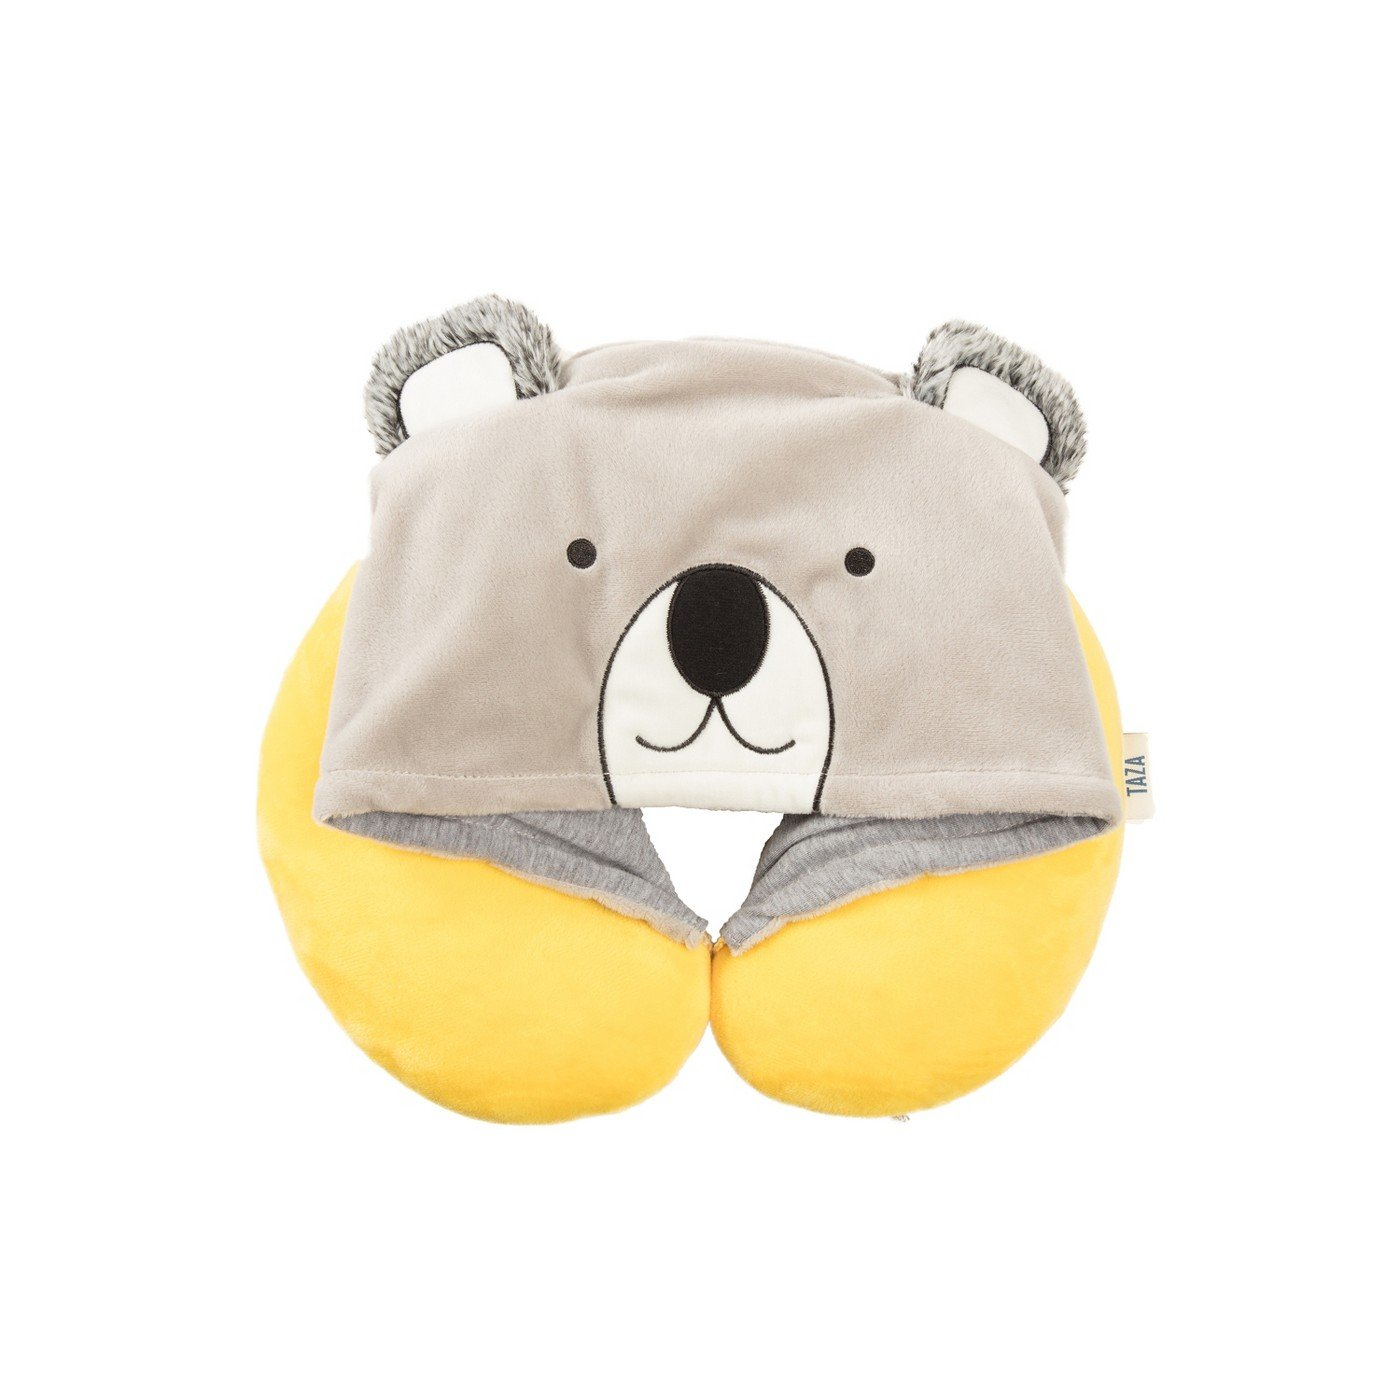 Love Taza Hooded Koala Kids' Neck Pillow - Yellow/Gray unknown